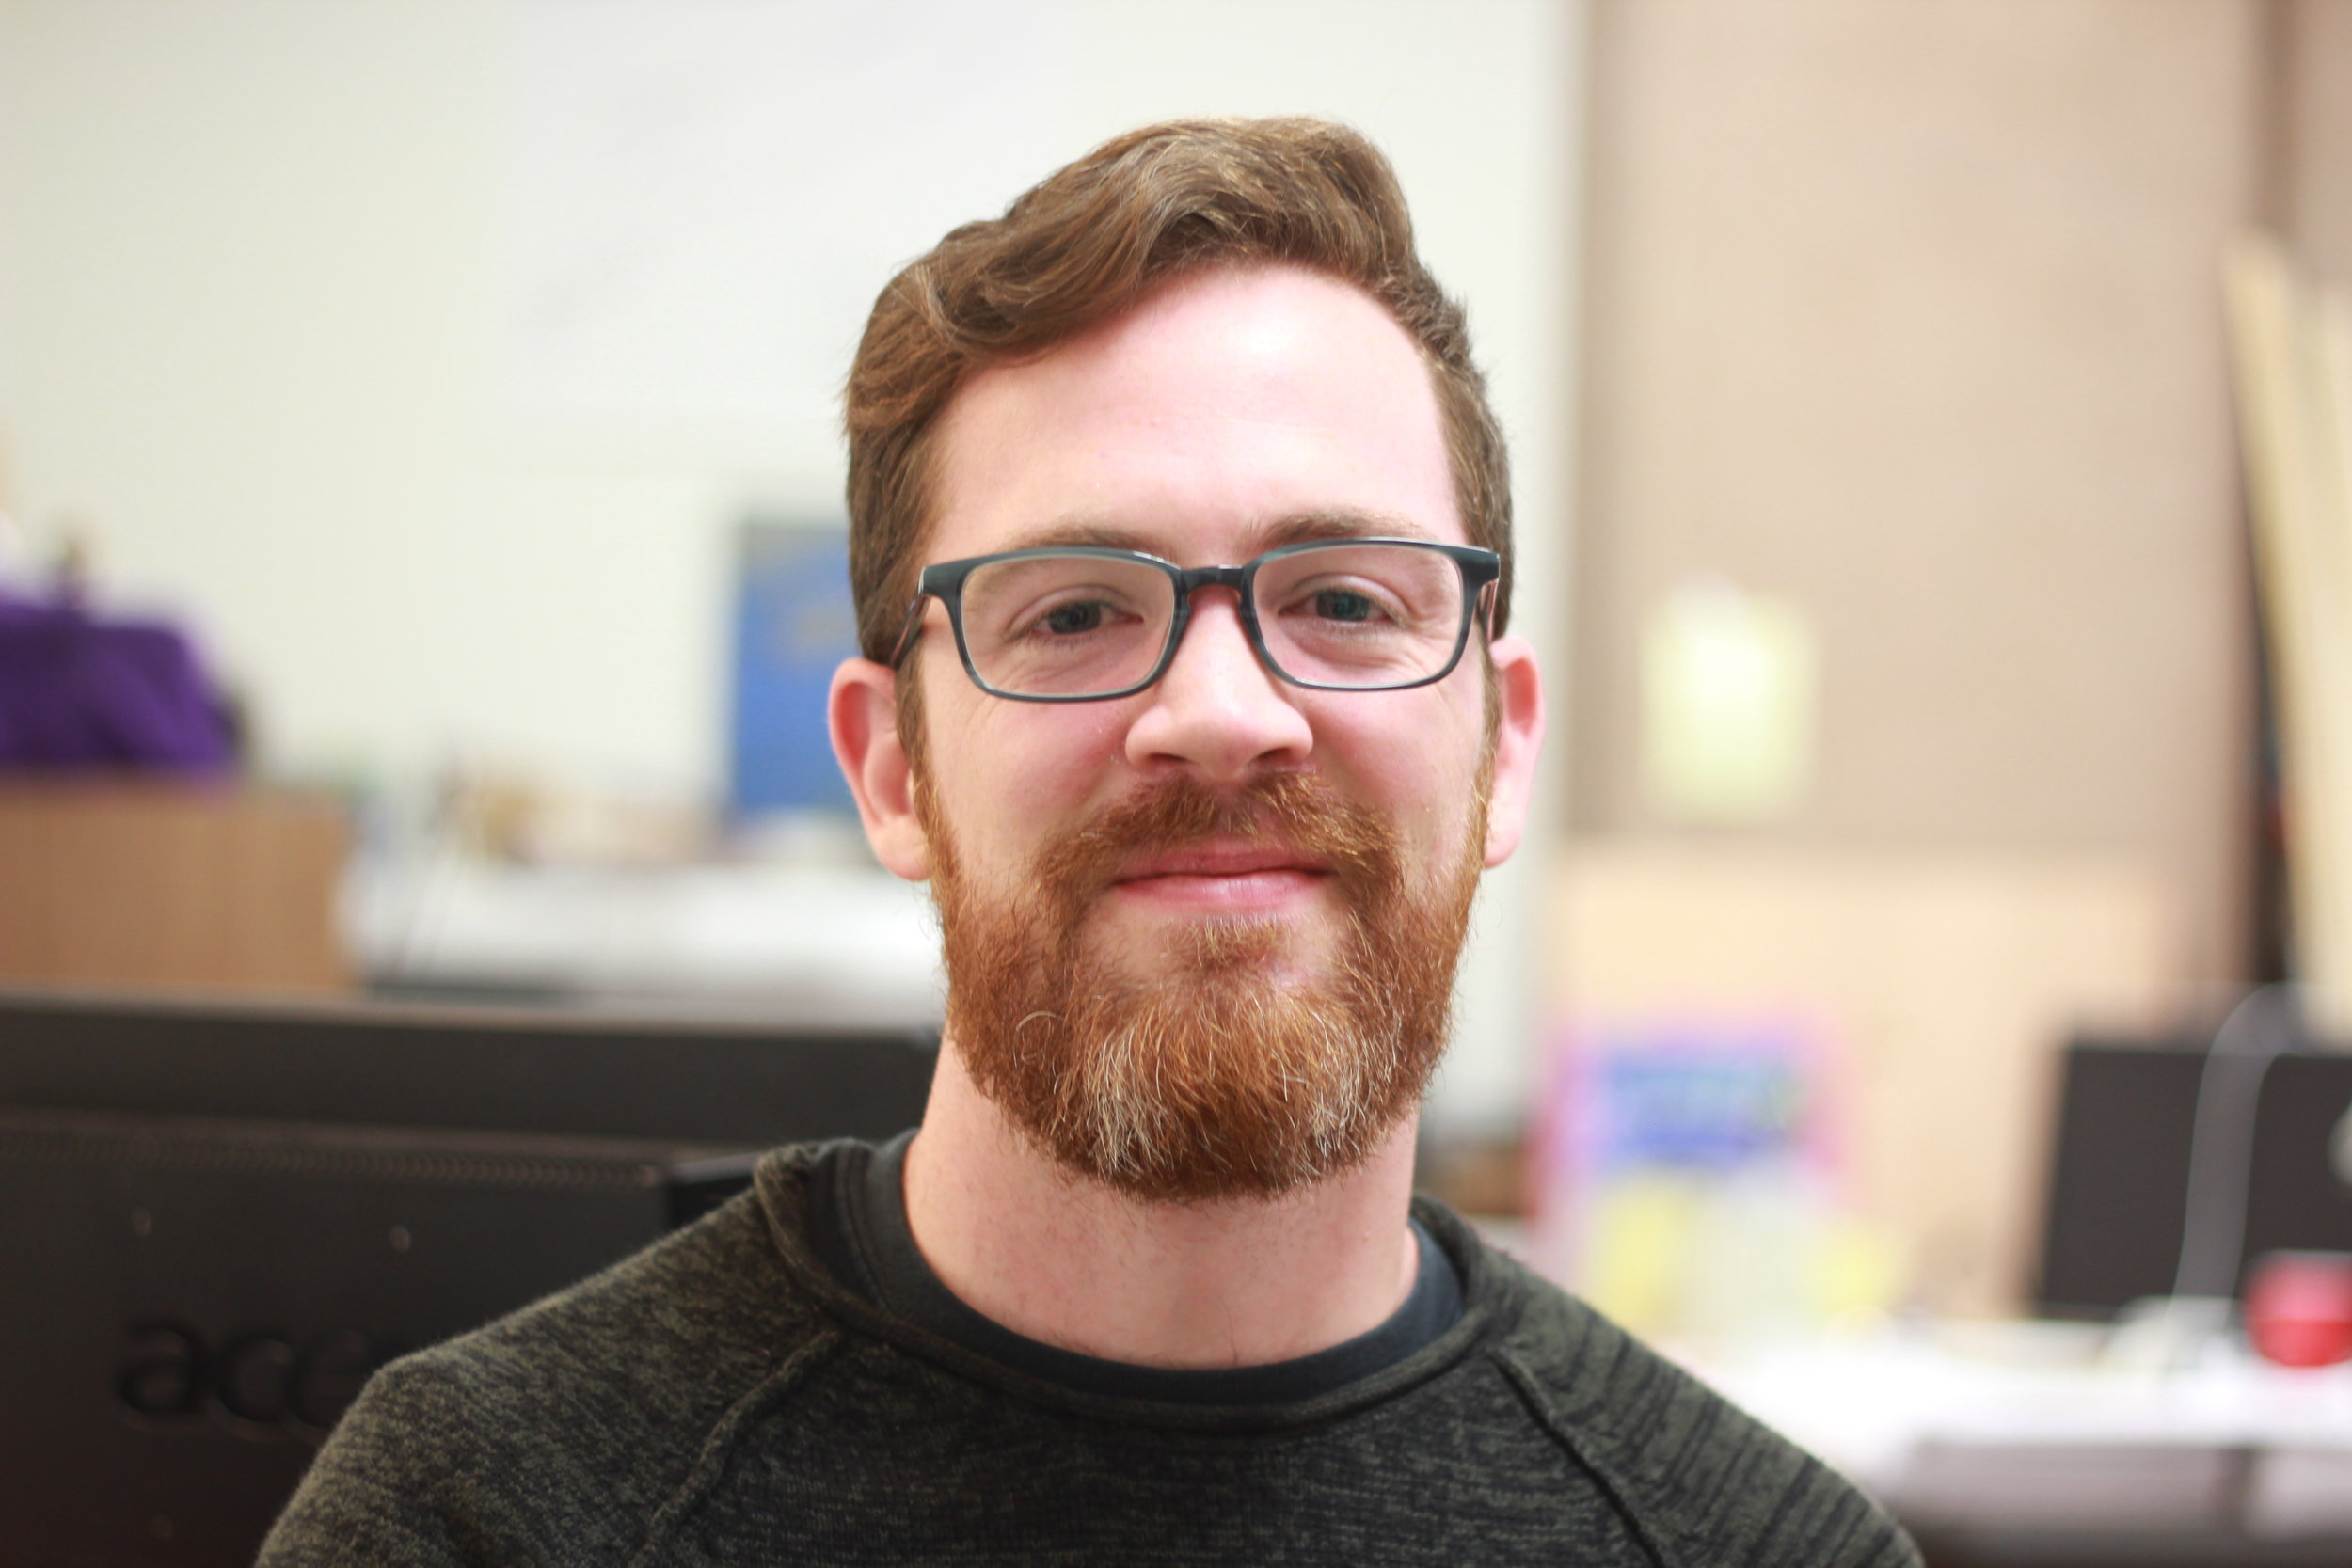 Craig G Anderson - Craig G Anderson is a doctoral candidate studying the cognitive influences of video game playing. A lifelong gamer and learner, his interests include how games engage players and how these principles can be leveraged for prosocial or educational means. Current projects include investigating the role of failure in educational games and persistence in esports.craigga@uci.edu